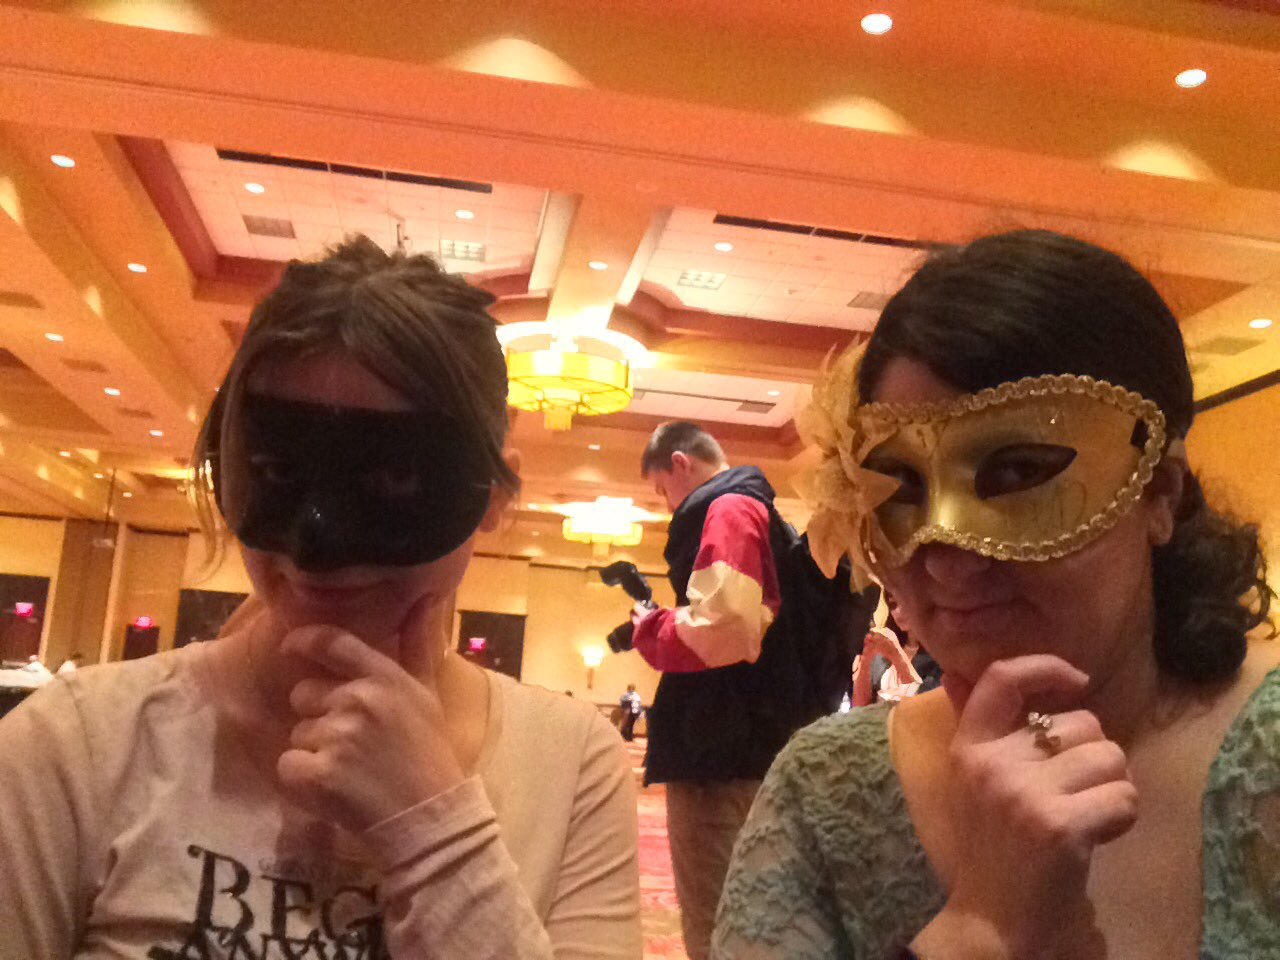 I 💚 ISU bc of lifelong friendships I made for past 5 years at ISU and all the amazing events to attend like casino night! #redbirdsetgo https://t.co/78tTVaBLzo